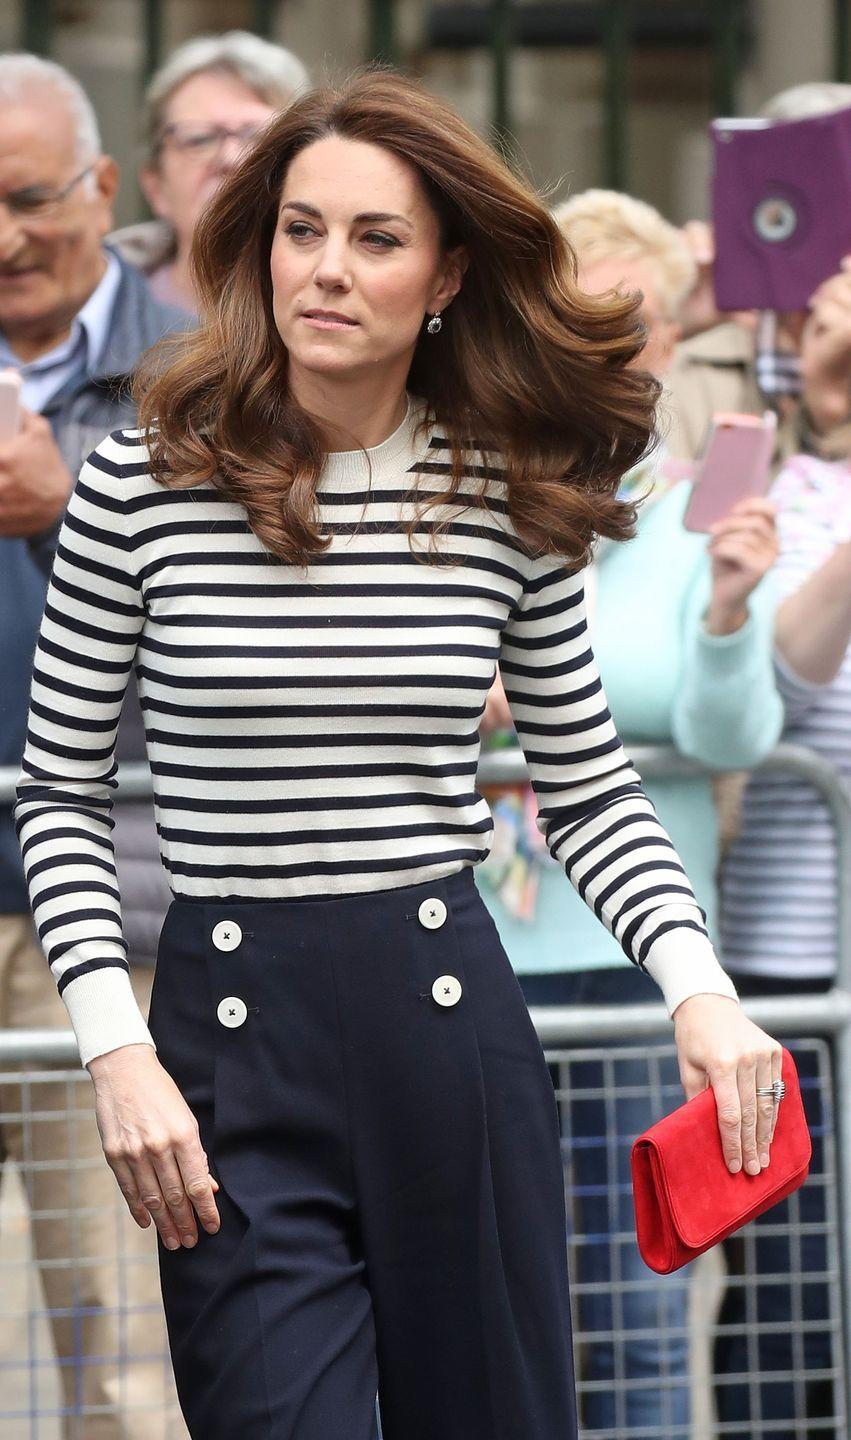 <p>The Duchess of Cambridge chose a nautical look for this morning's launch of the King's Cup. She paired a striped shirt with sailor-inspired trousers and a bright red handbag. </p>